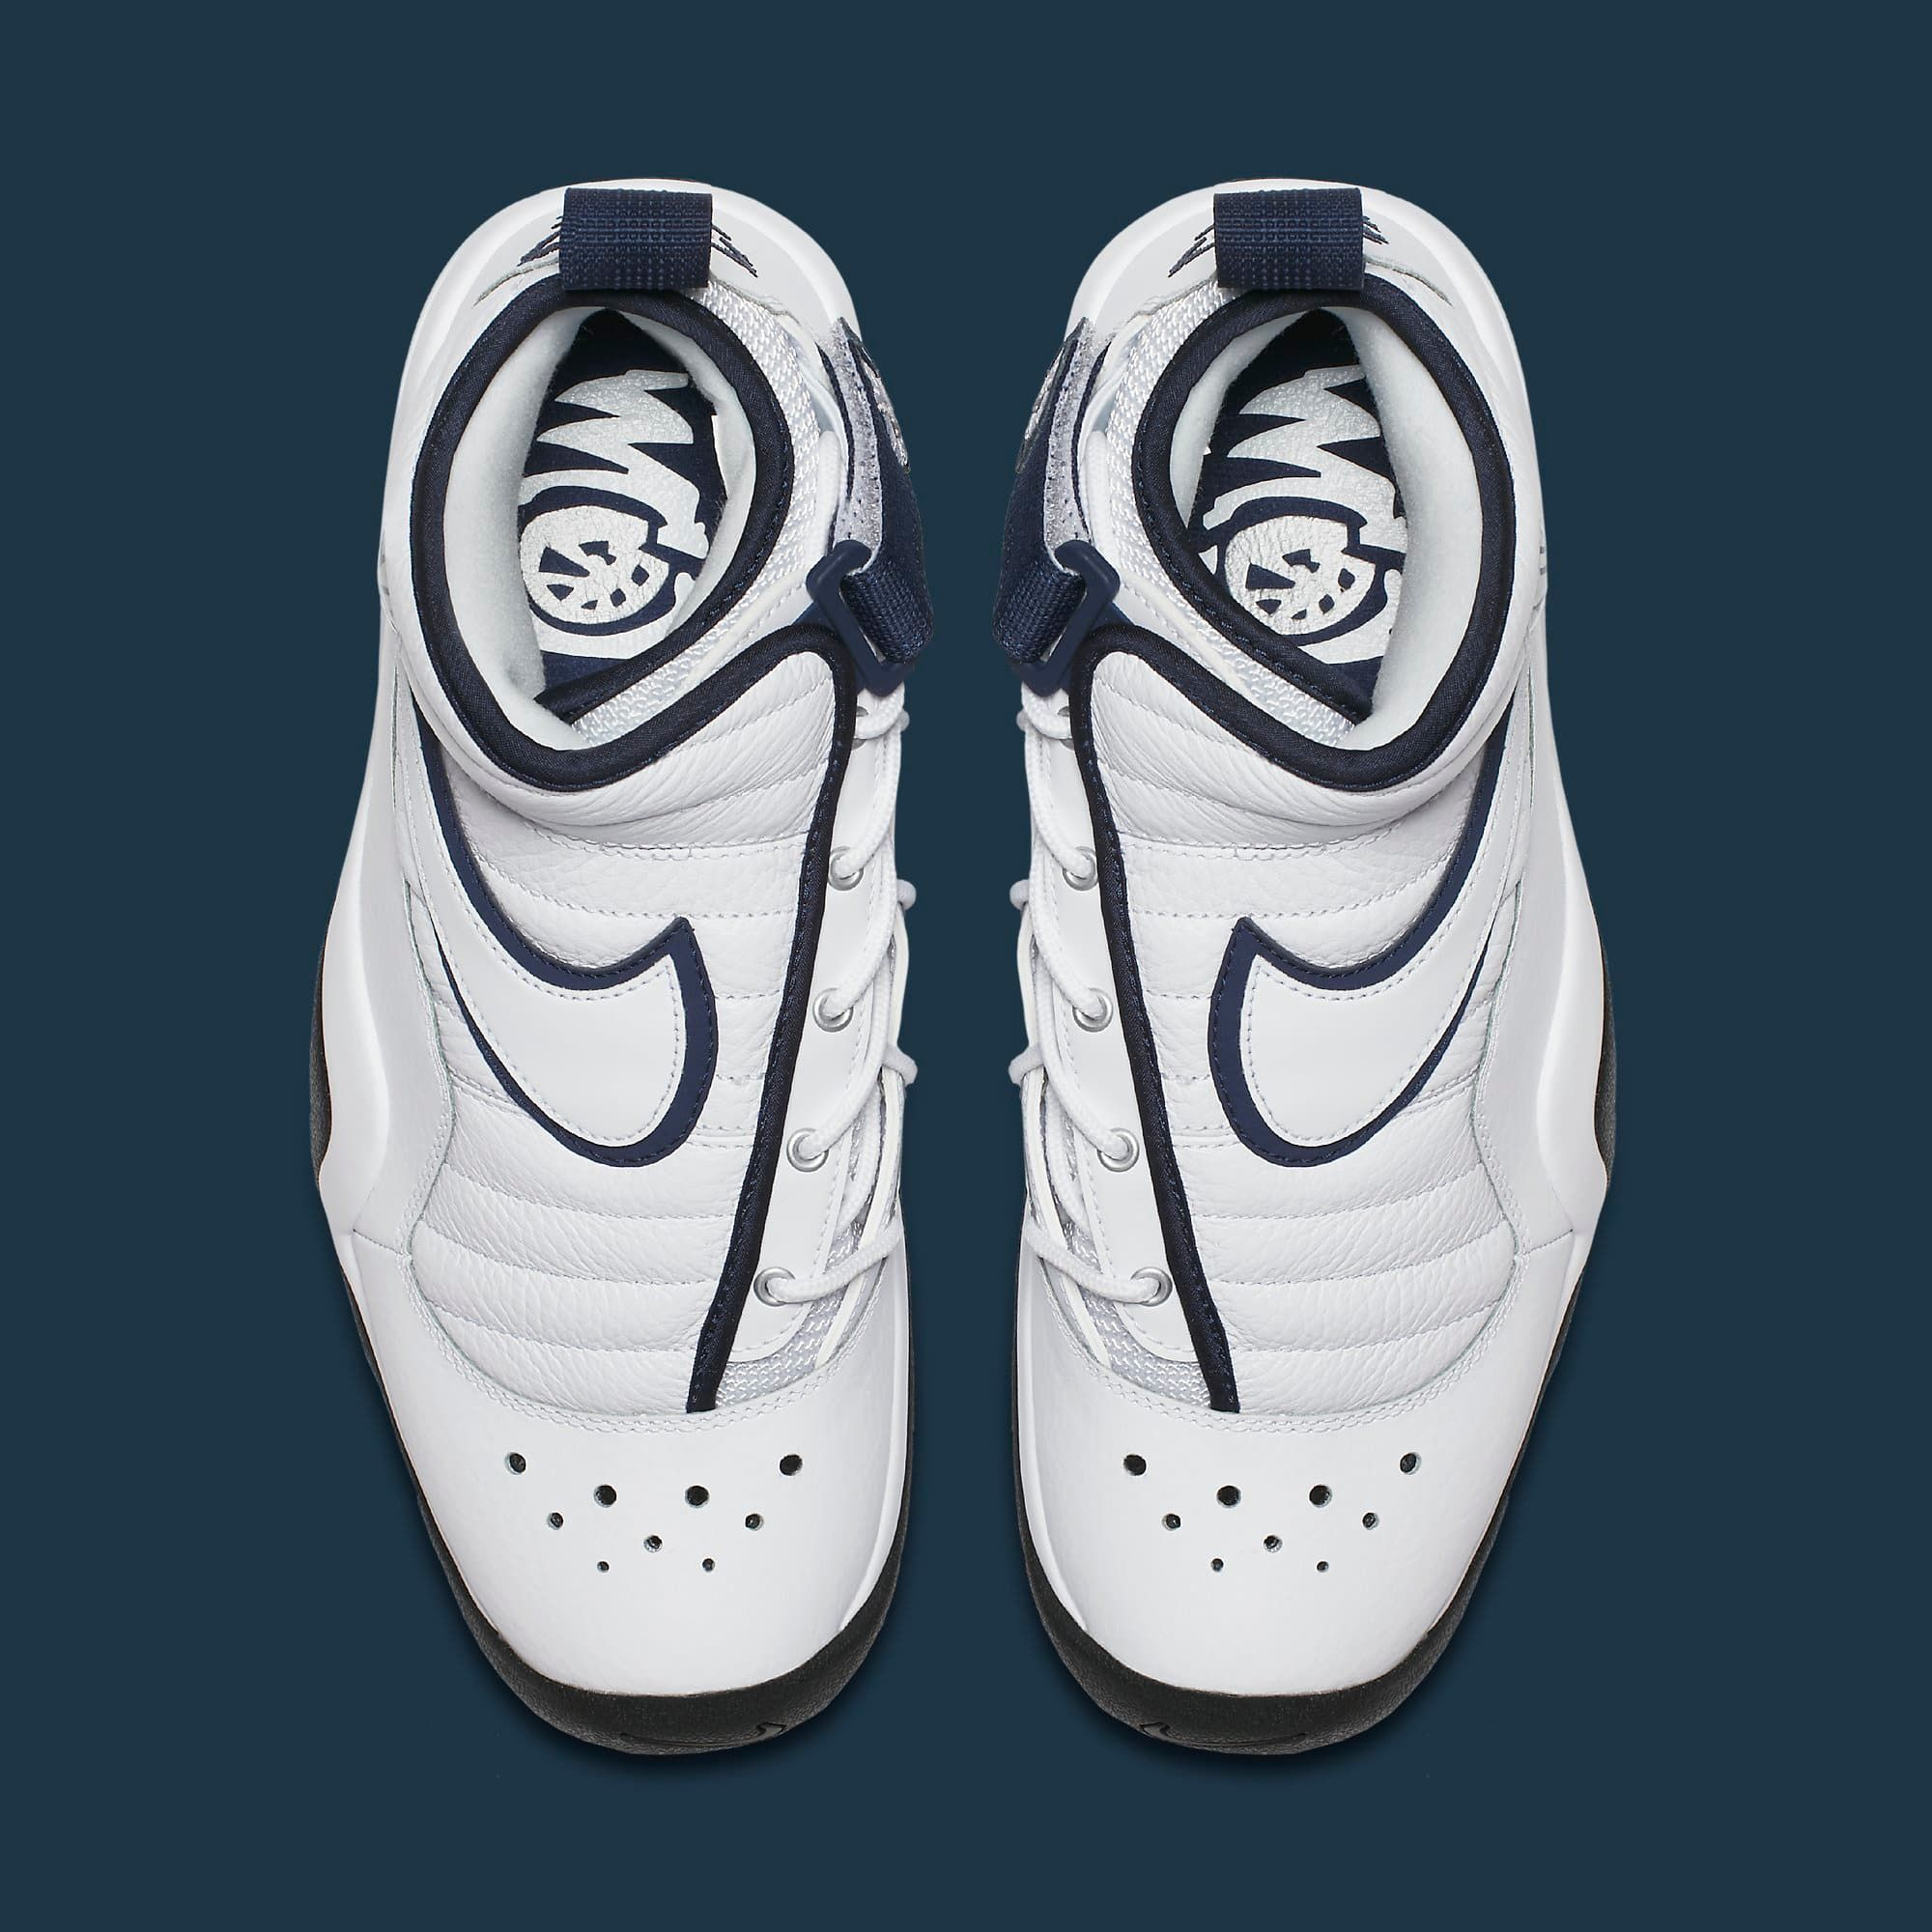 Dennis Rodman's Nike Air Shake Ndestrukt returns in a white and navy  colorway.